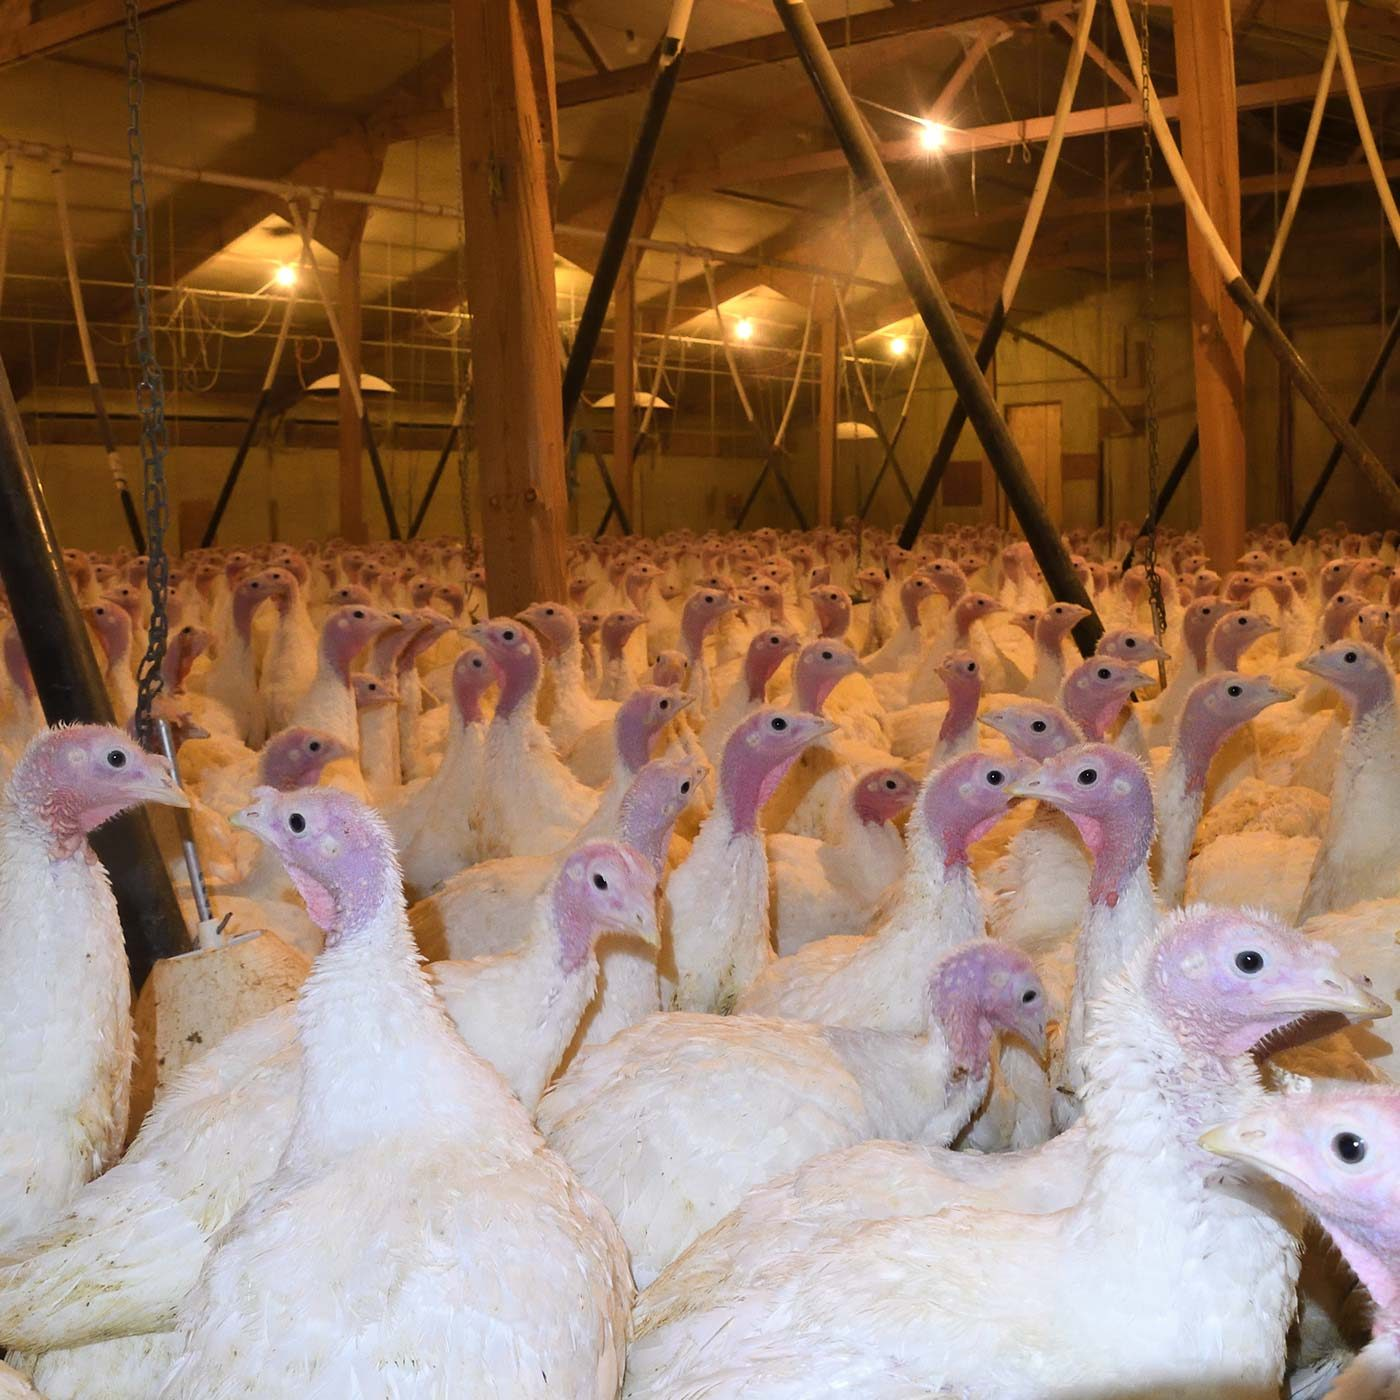 Turkeys Eaten Alive on Award-Winning Farm